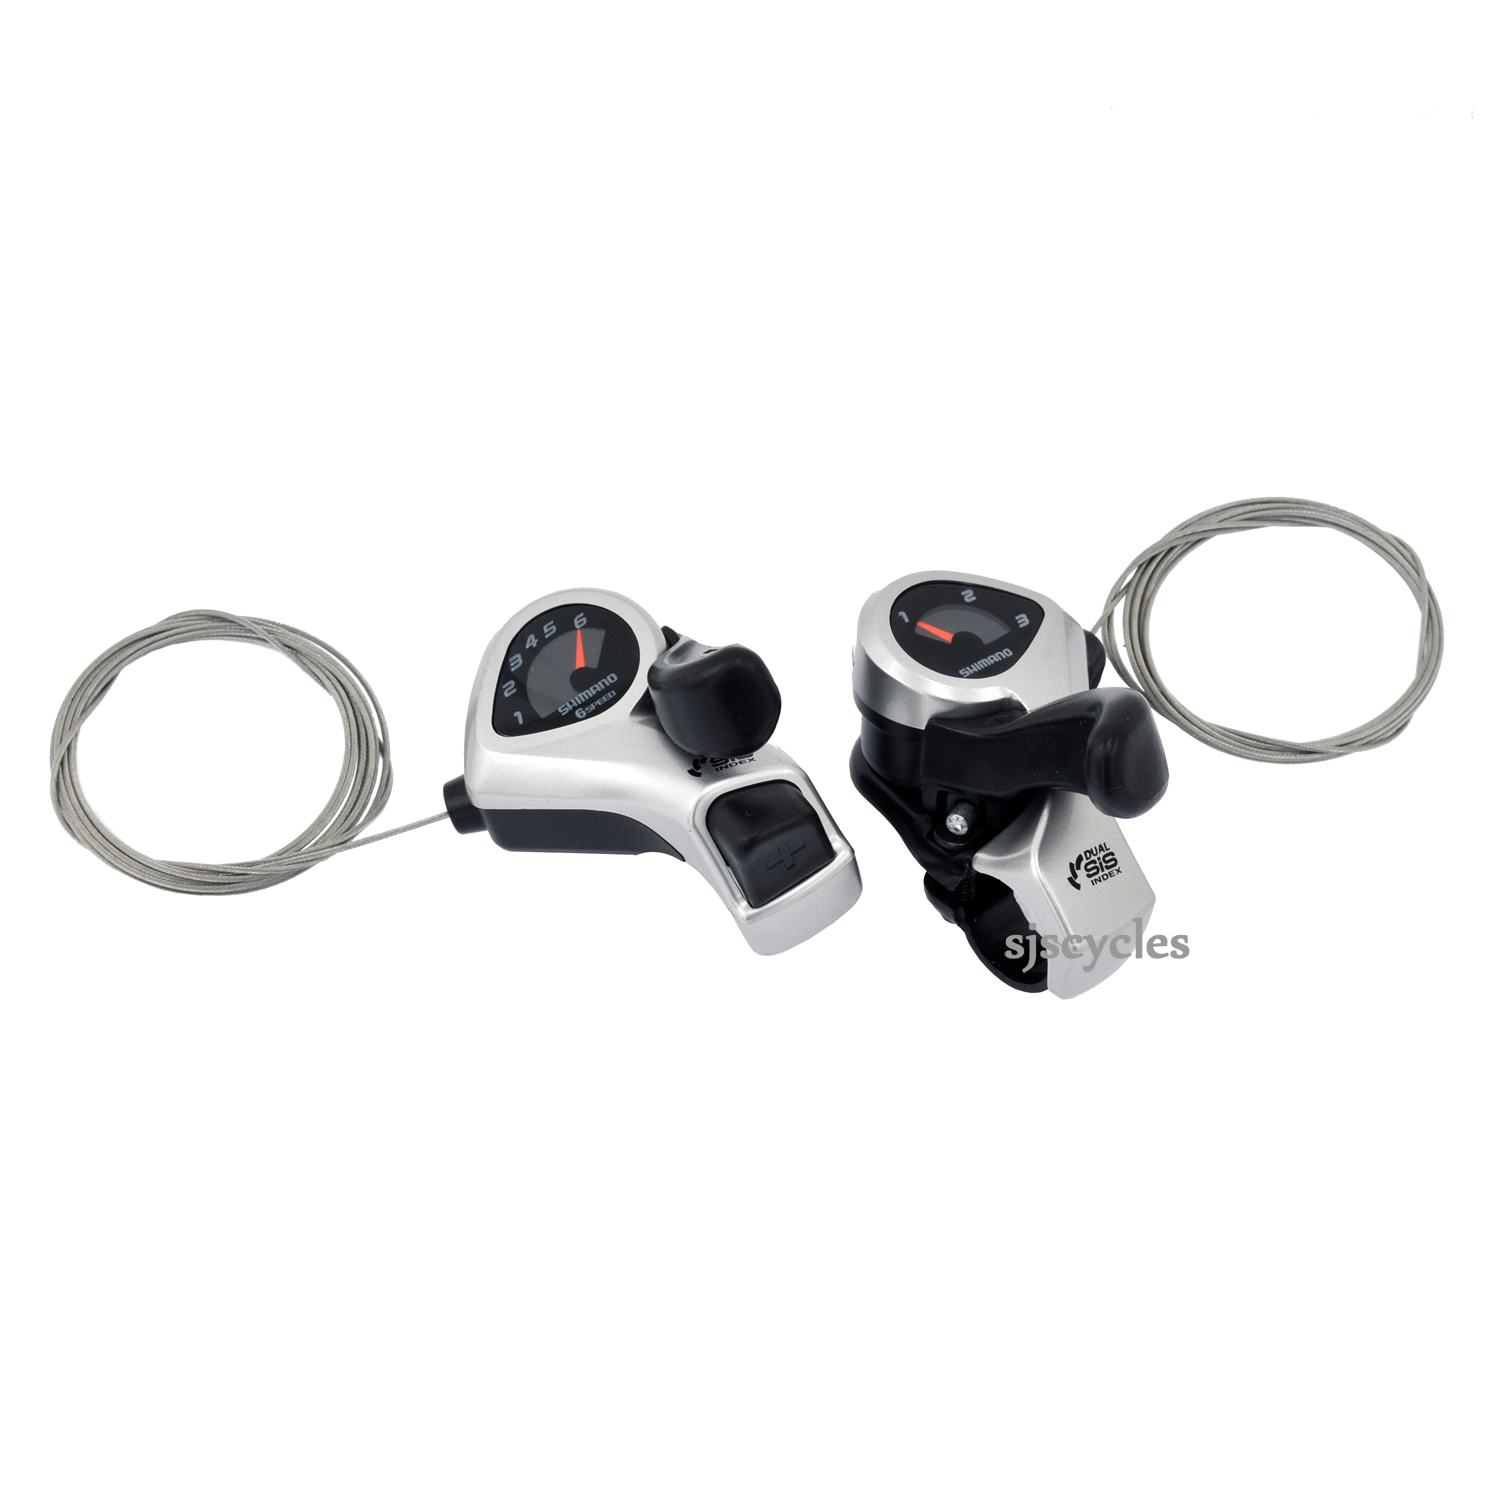 Tourney NEW! Shimano Tourney TY-31 Shifter Set /& Cables 3 x 6 Shifter Set